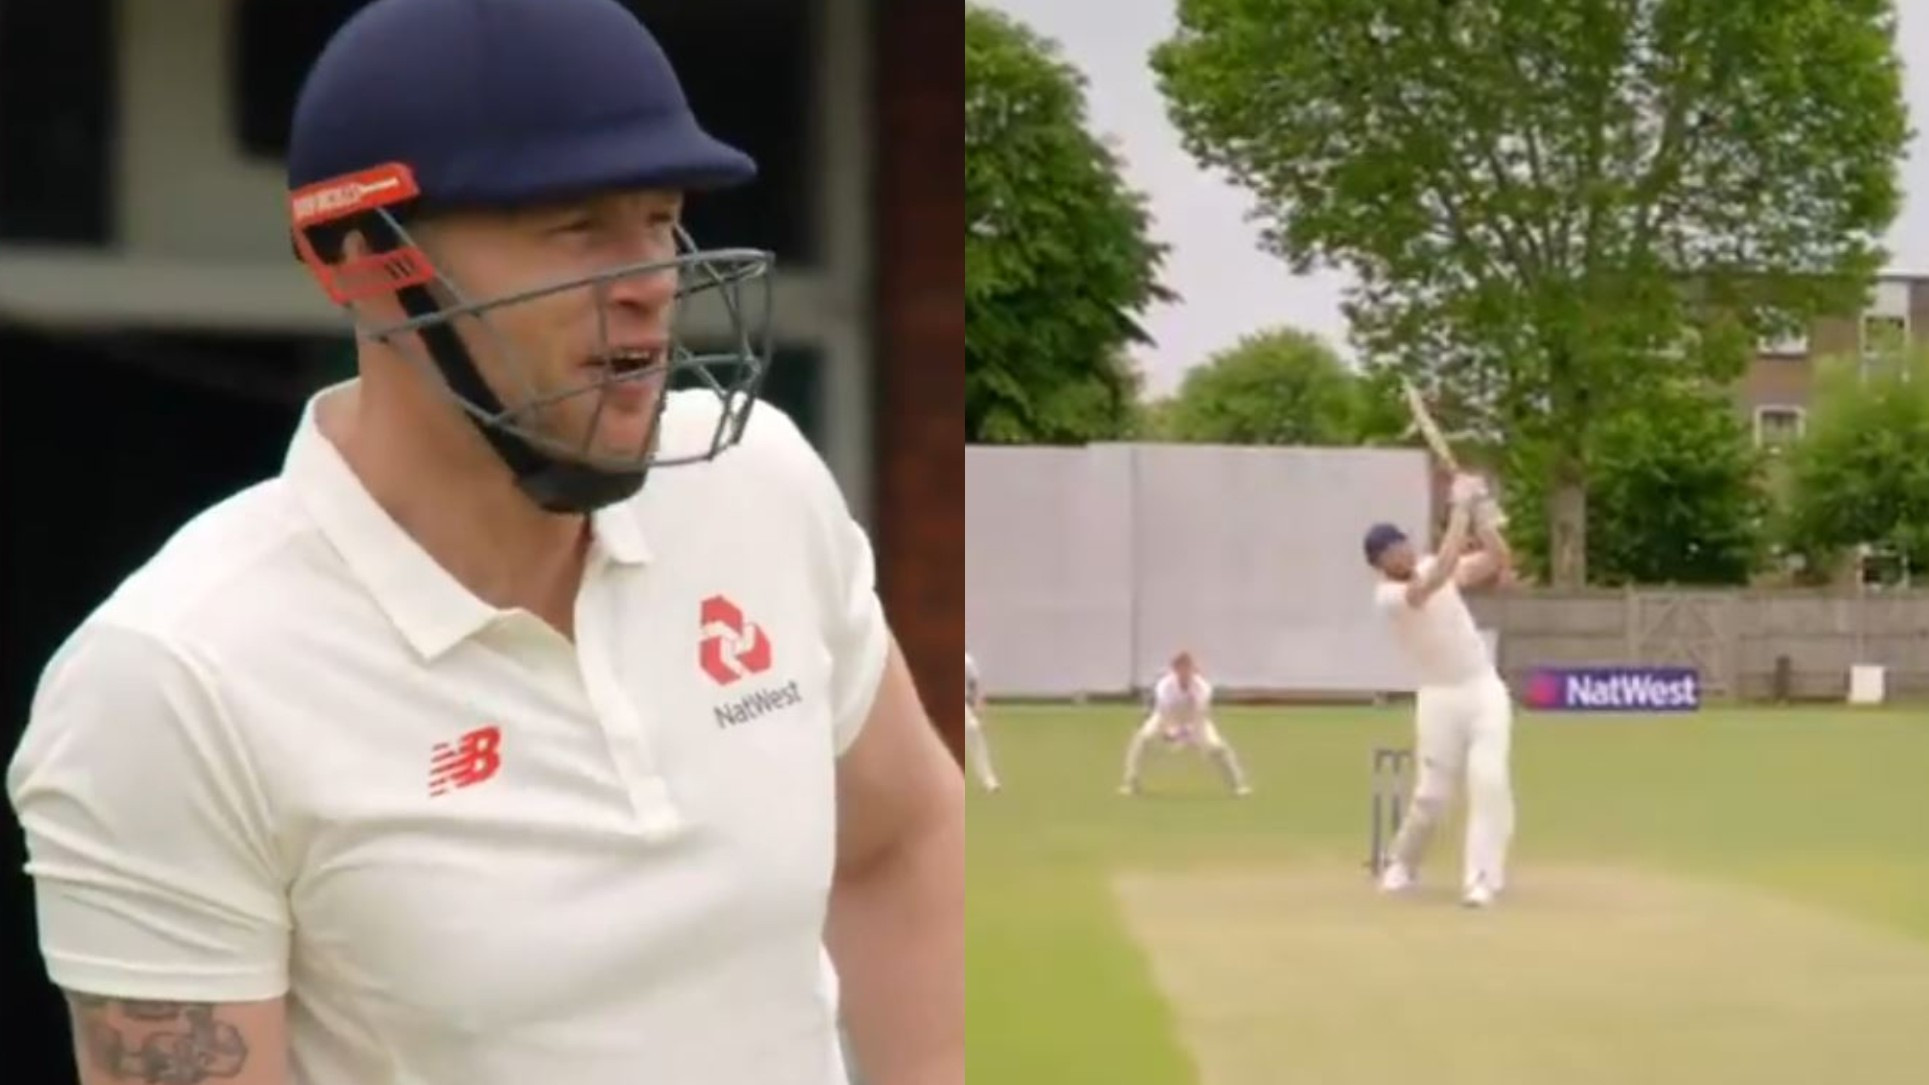 WATCH- Andrew Flintoff takes on the Ashes 2005 version of himself in 2019